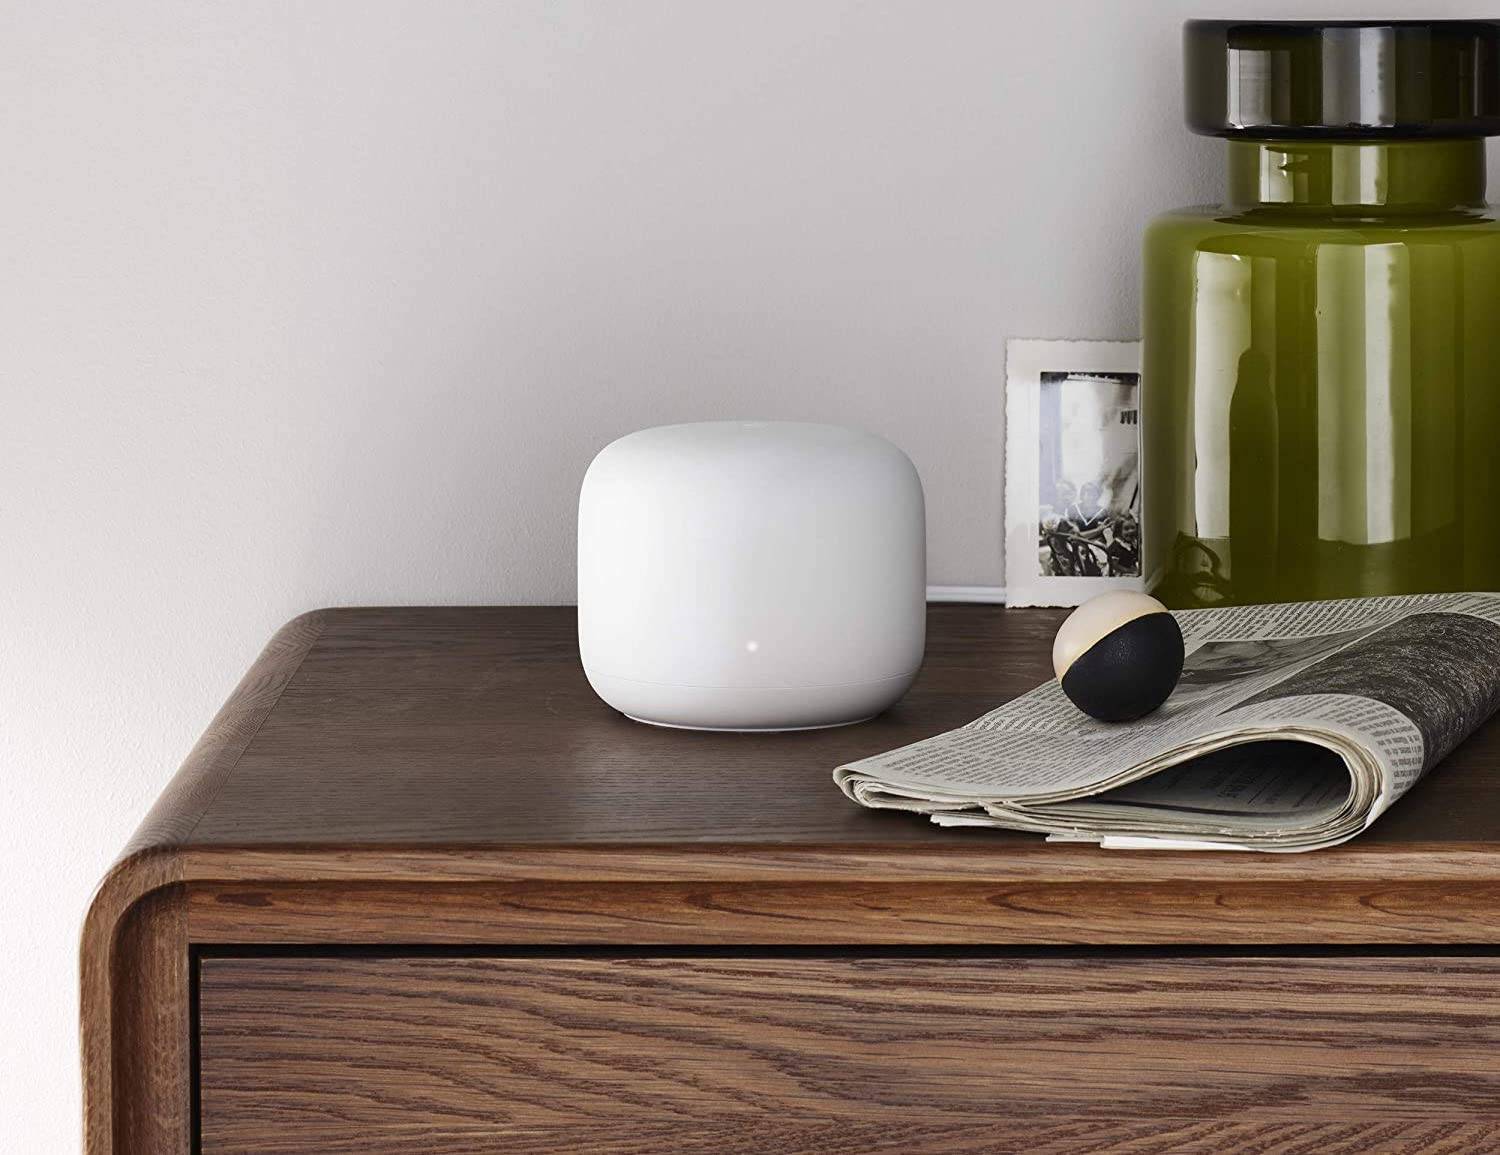 Google Nest WiFi Router (2nd Generation)